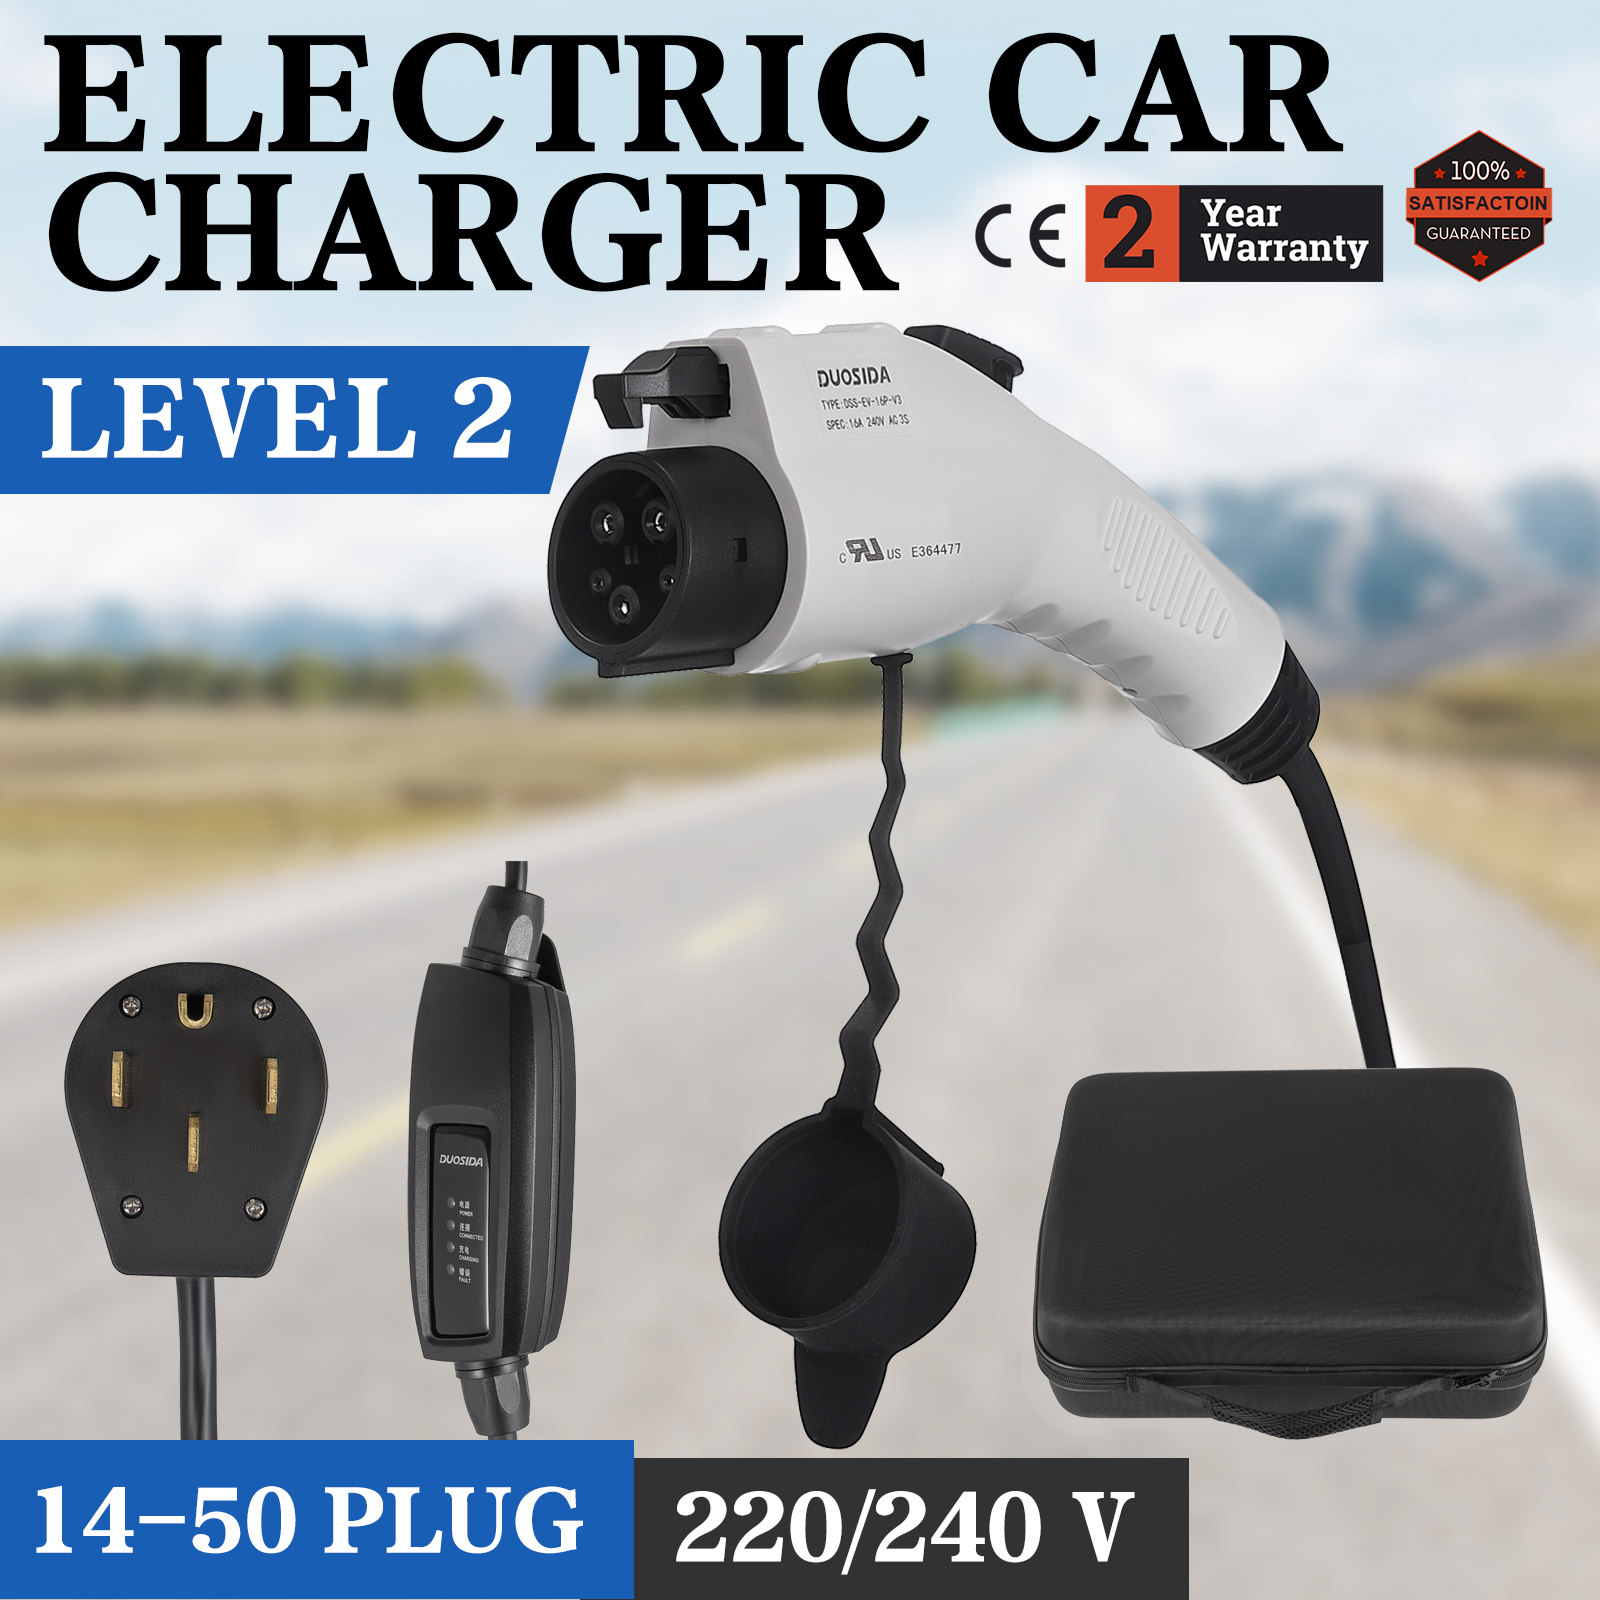 Details About Universal Electric Car Charger 14 50 Plug Level 2 220v Ev 240v Evse 23 Feet